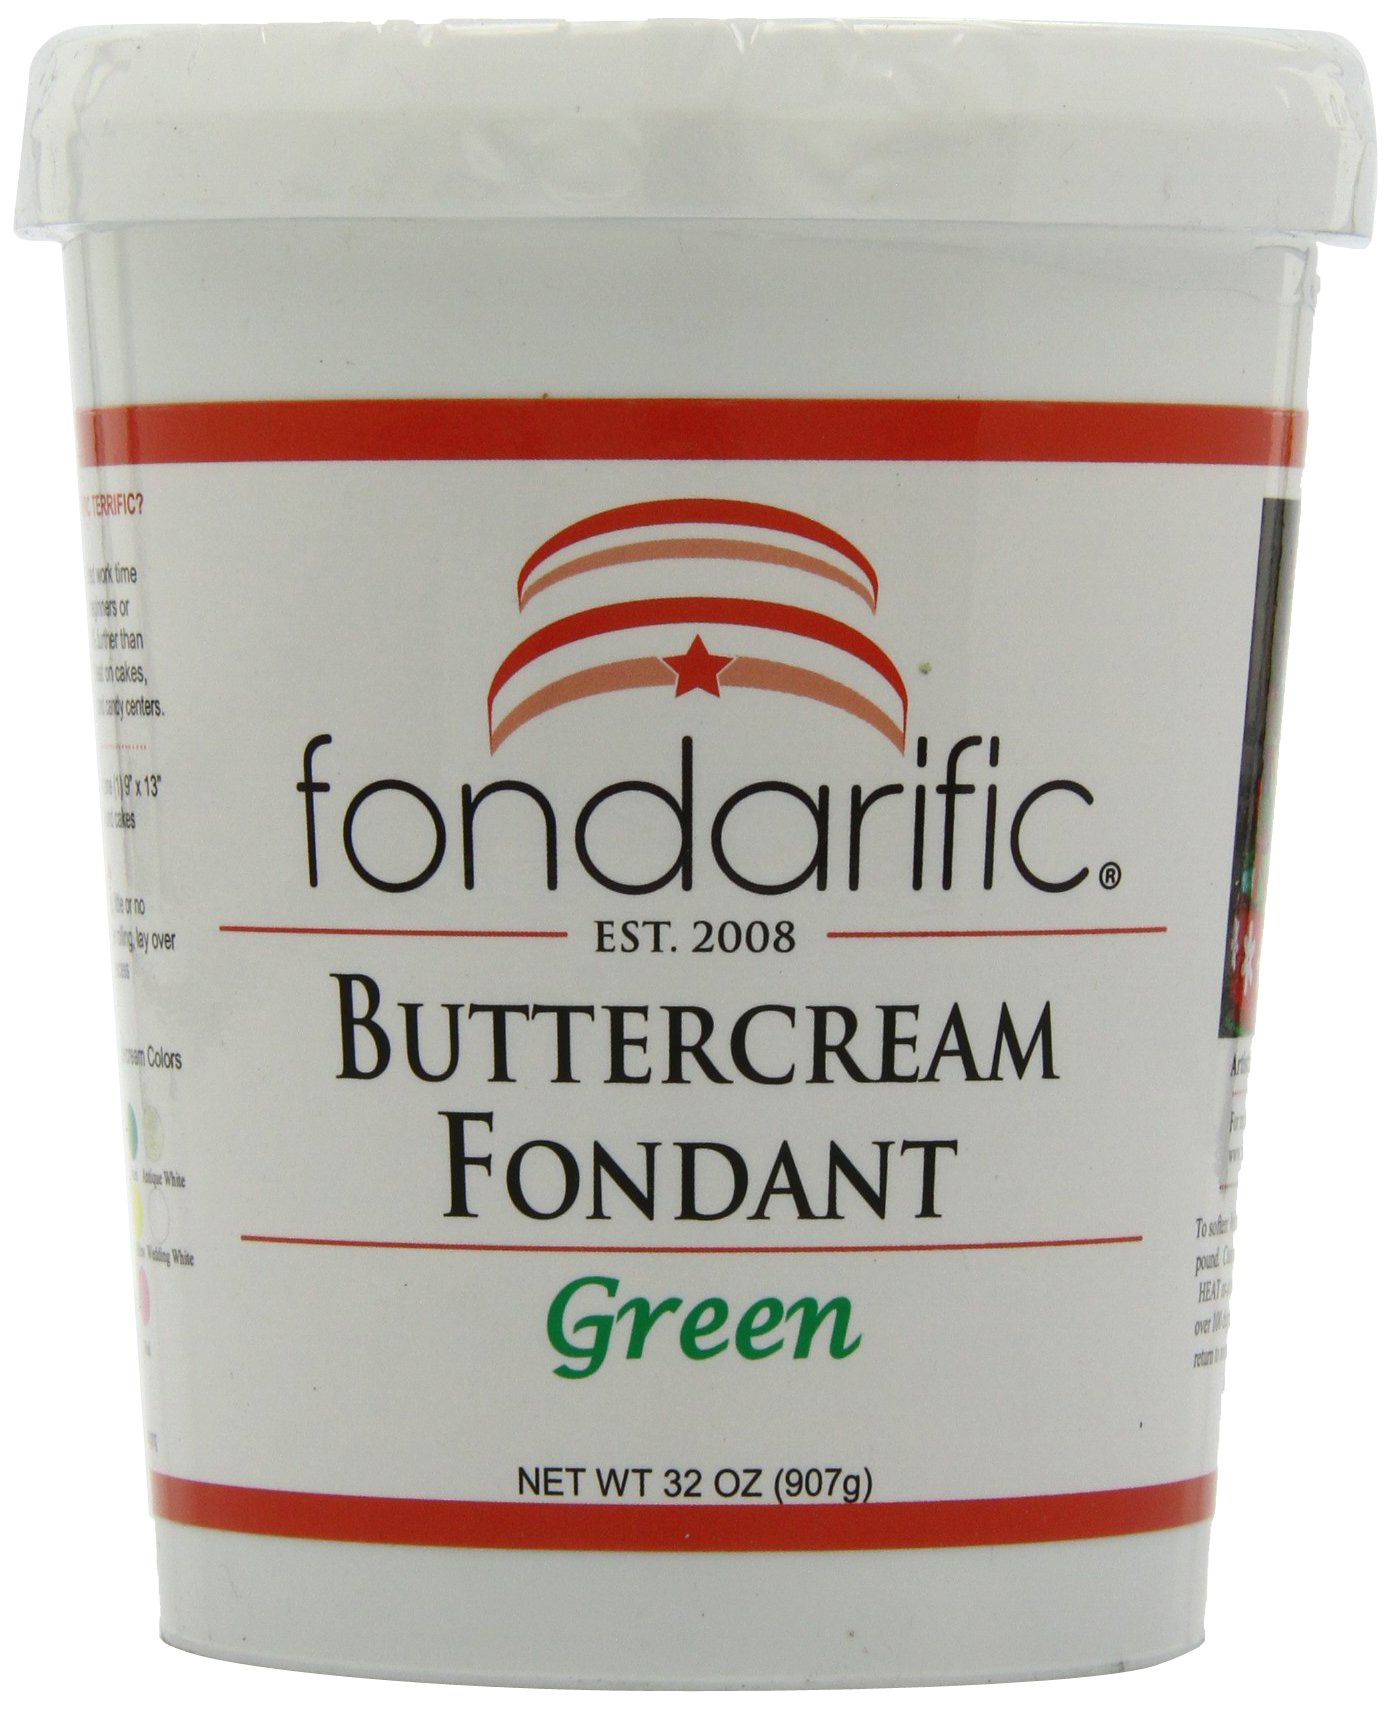 Fondarific Buttercream Green Fondant, 32 Ounces